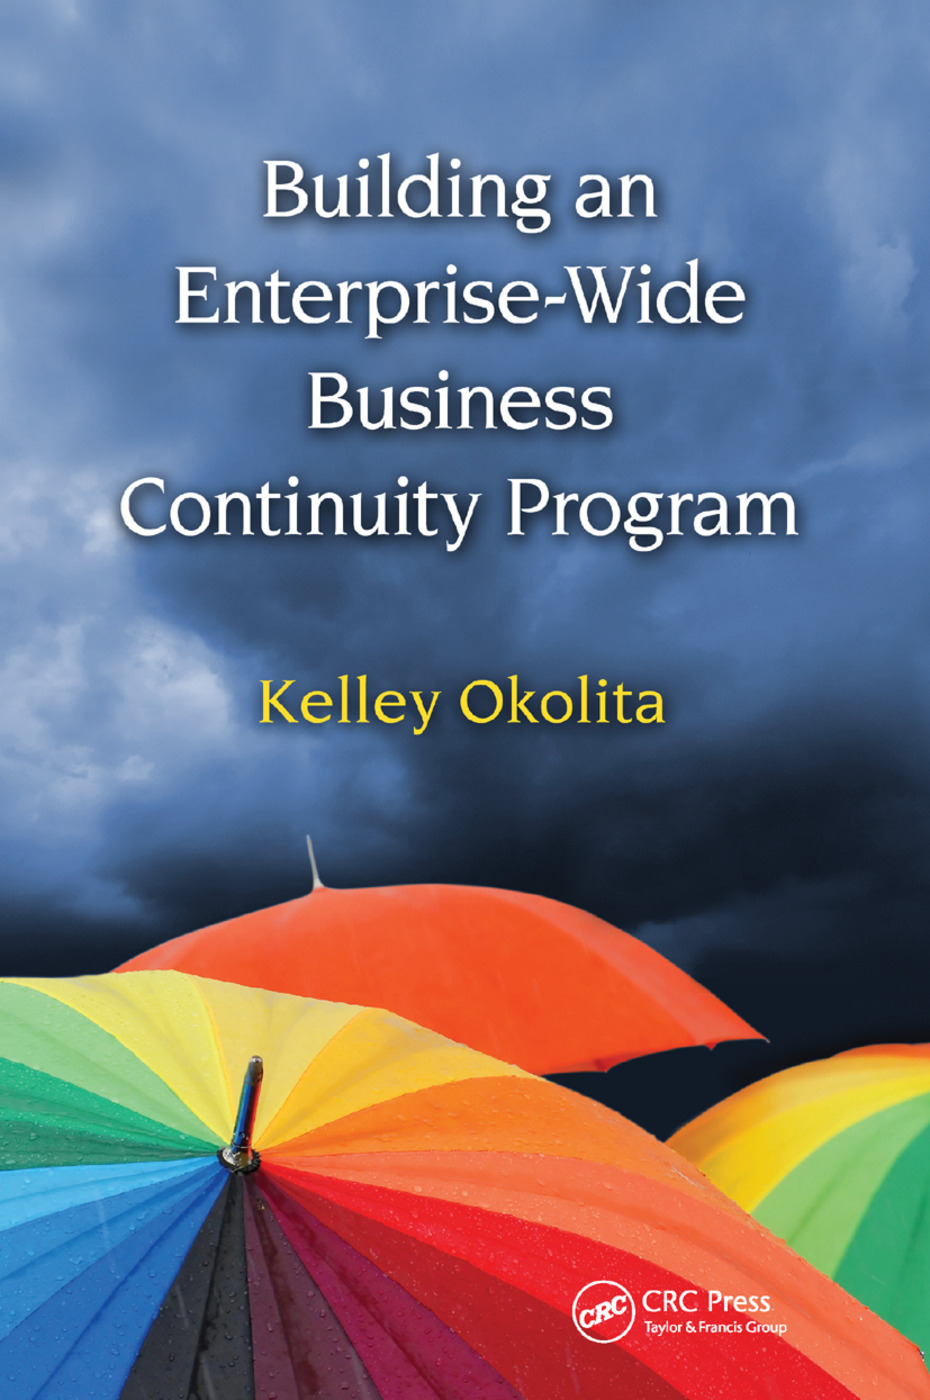 Building an Enterprise-Wide Business Continuity Program book cover